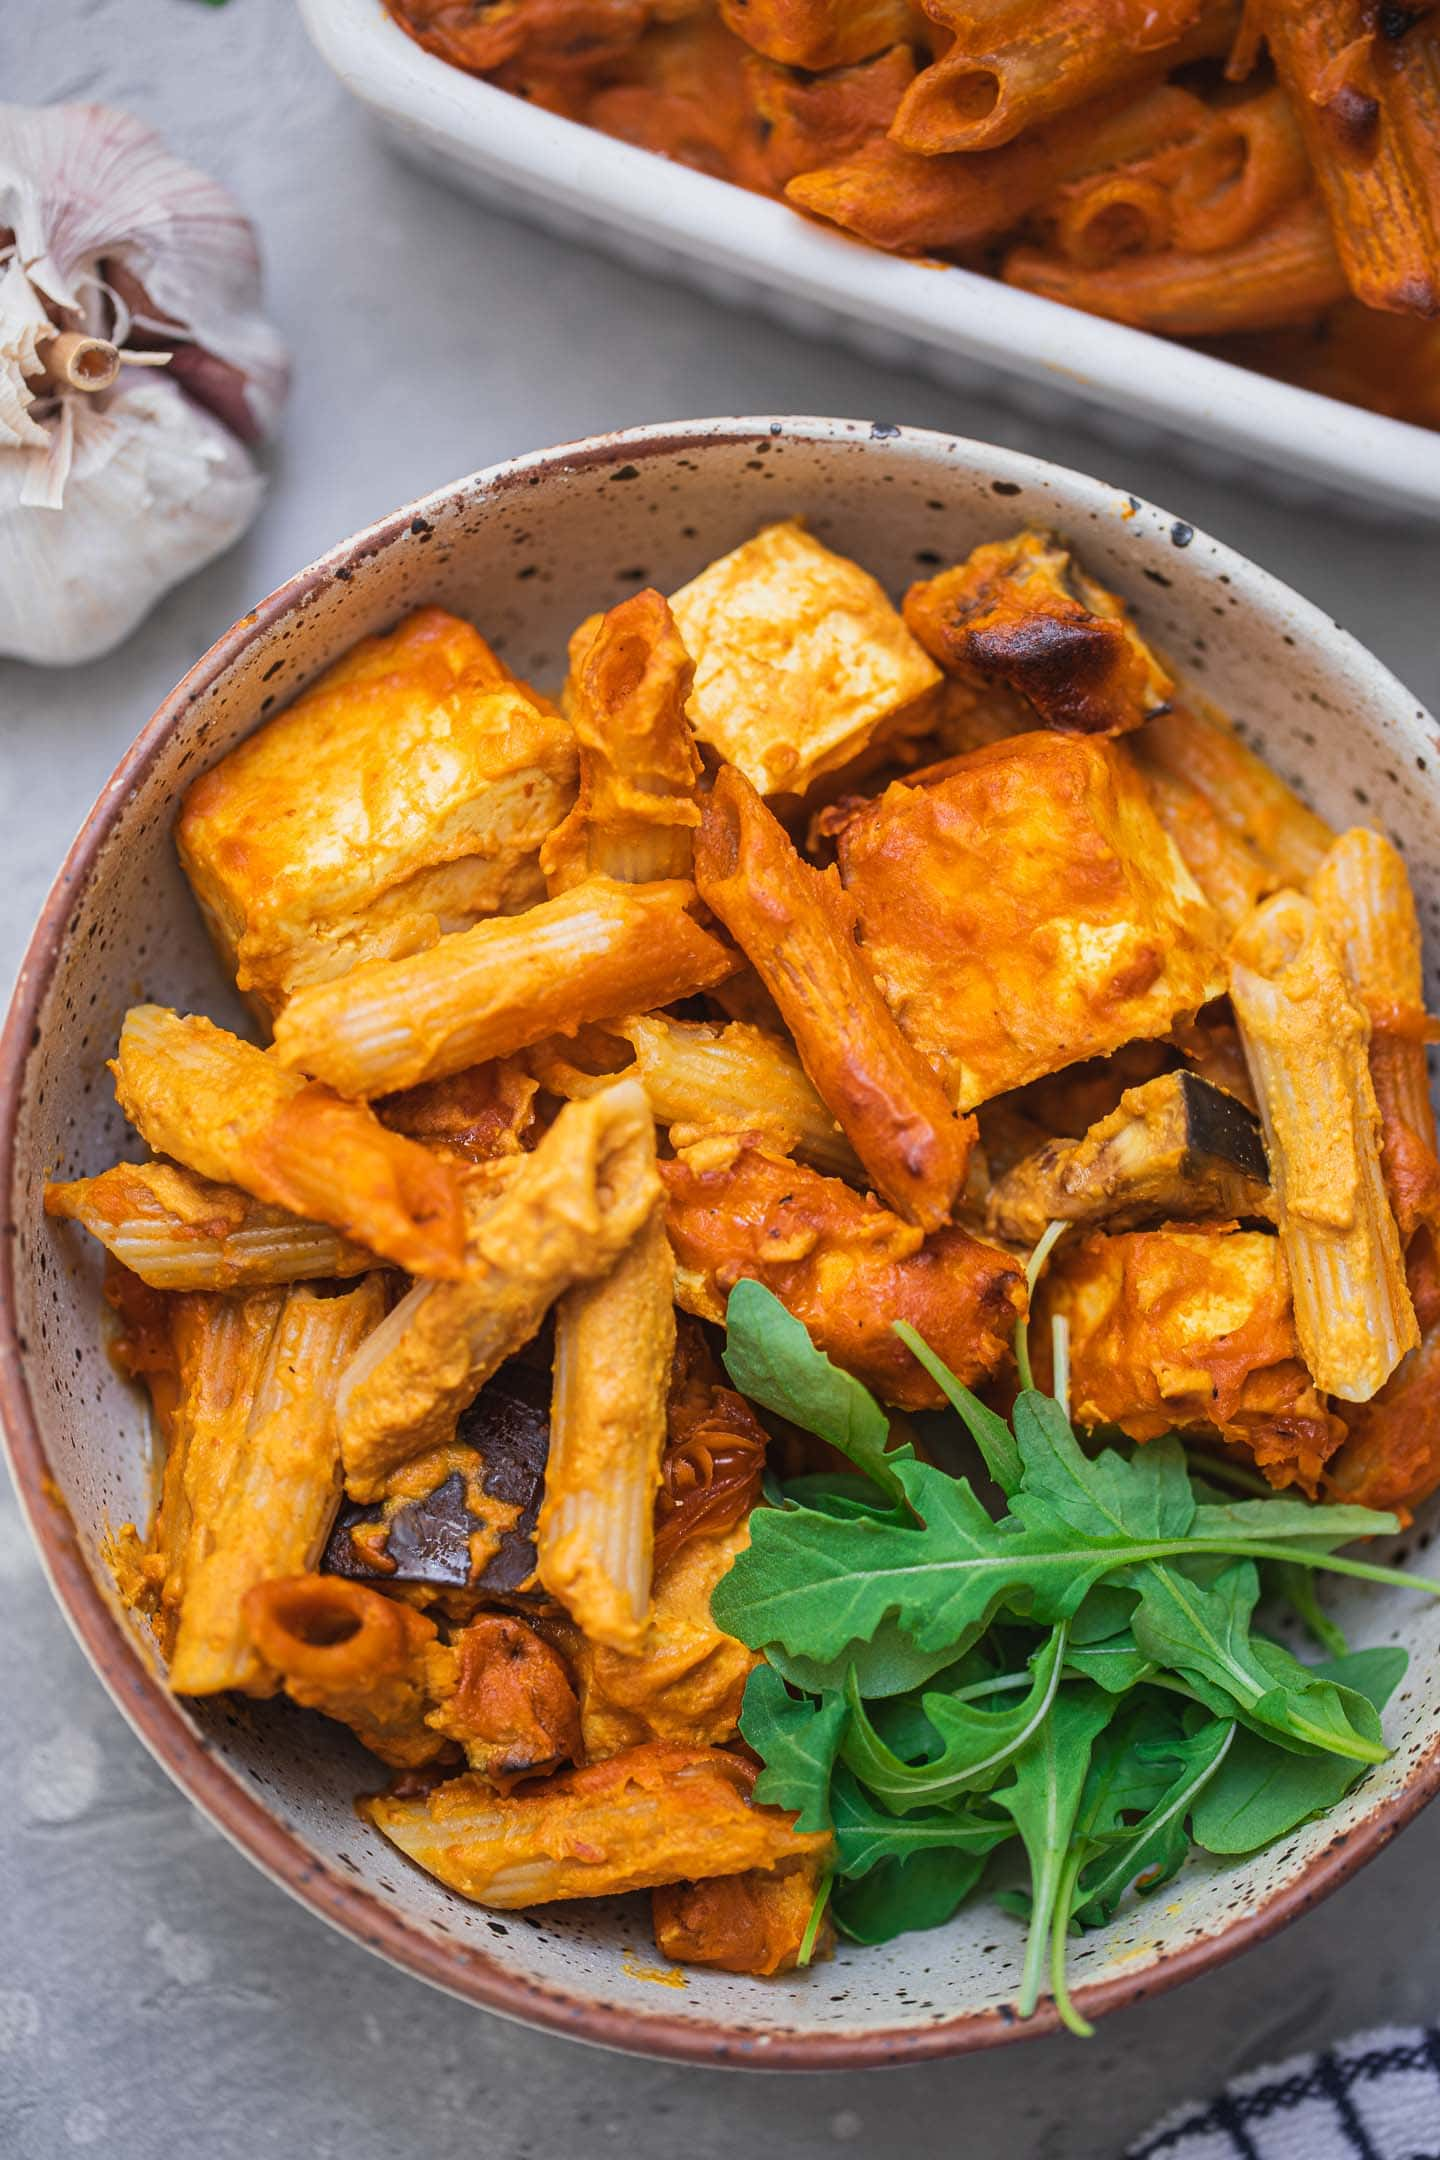 Pasta bake with tofu and aubergine in a bowl